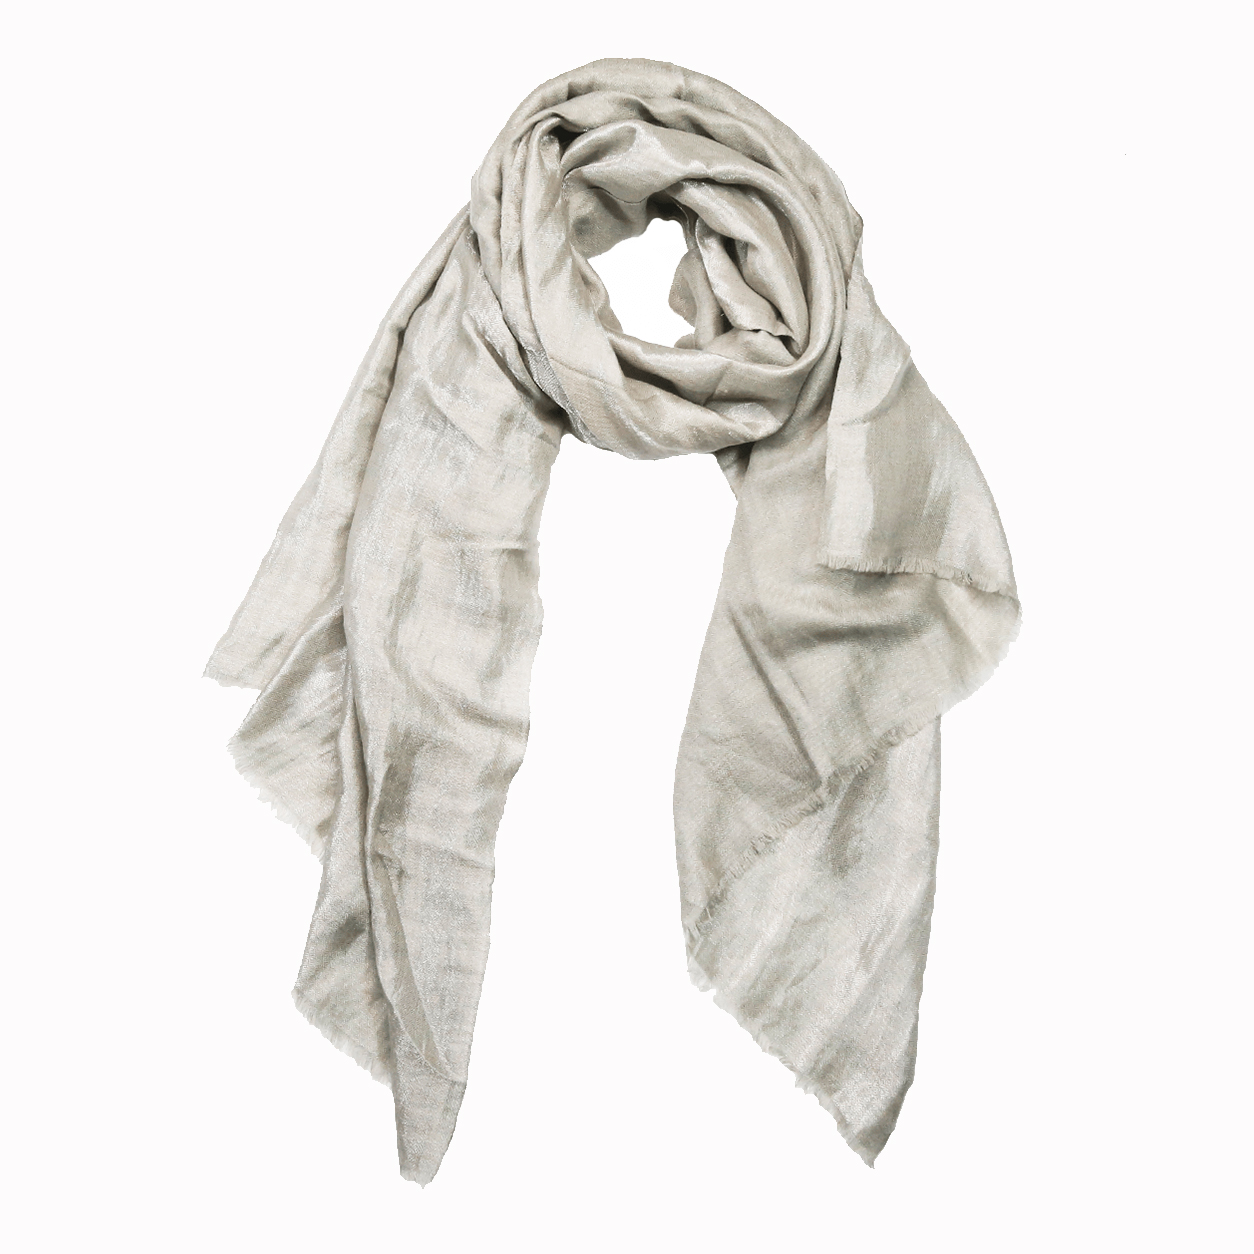 Metallic Reversible Pashmina Stole - Natural Silver